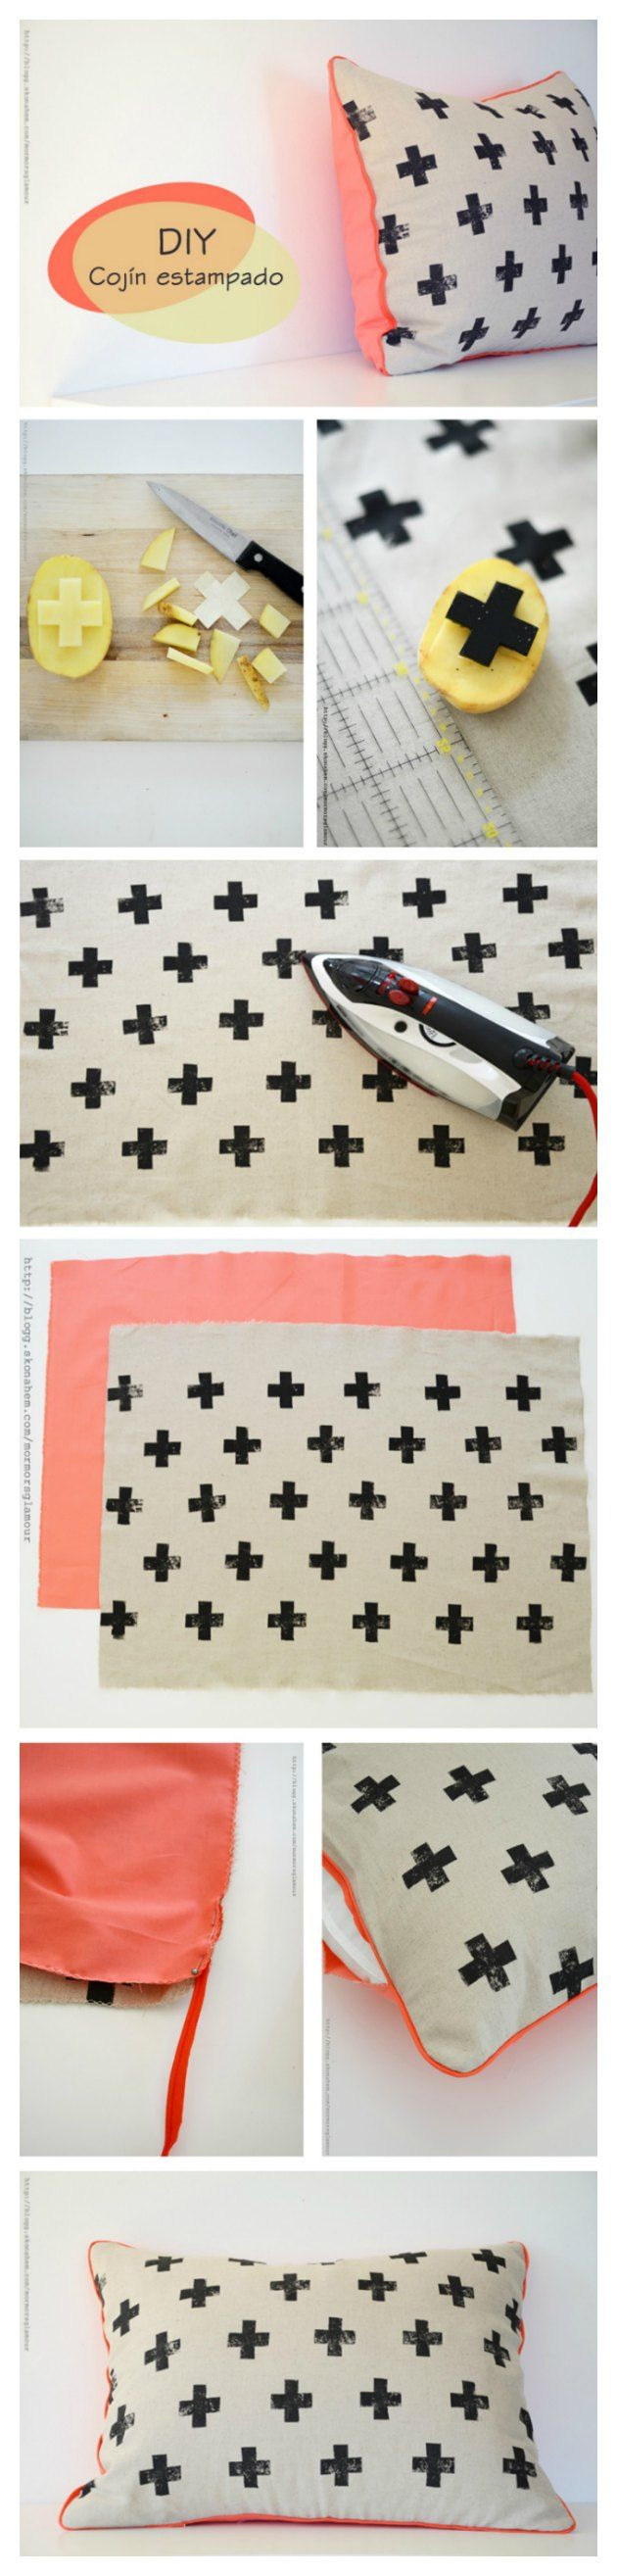 Fun Dollar Store Crafts for Teens - DIY Potato Stamped Pillow - Cheap and Easy DIY Ideas for Teenagers to Make for Dollar Stores - Inexpensive Gifts and Room Decor for Tweens, Boys and Girls - Awesome Step by Step Tutorials with Instructions for Cool DIY Projects http://diyprojectsforteens.com/dollar-store-crafts-teens